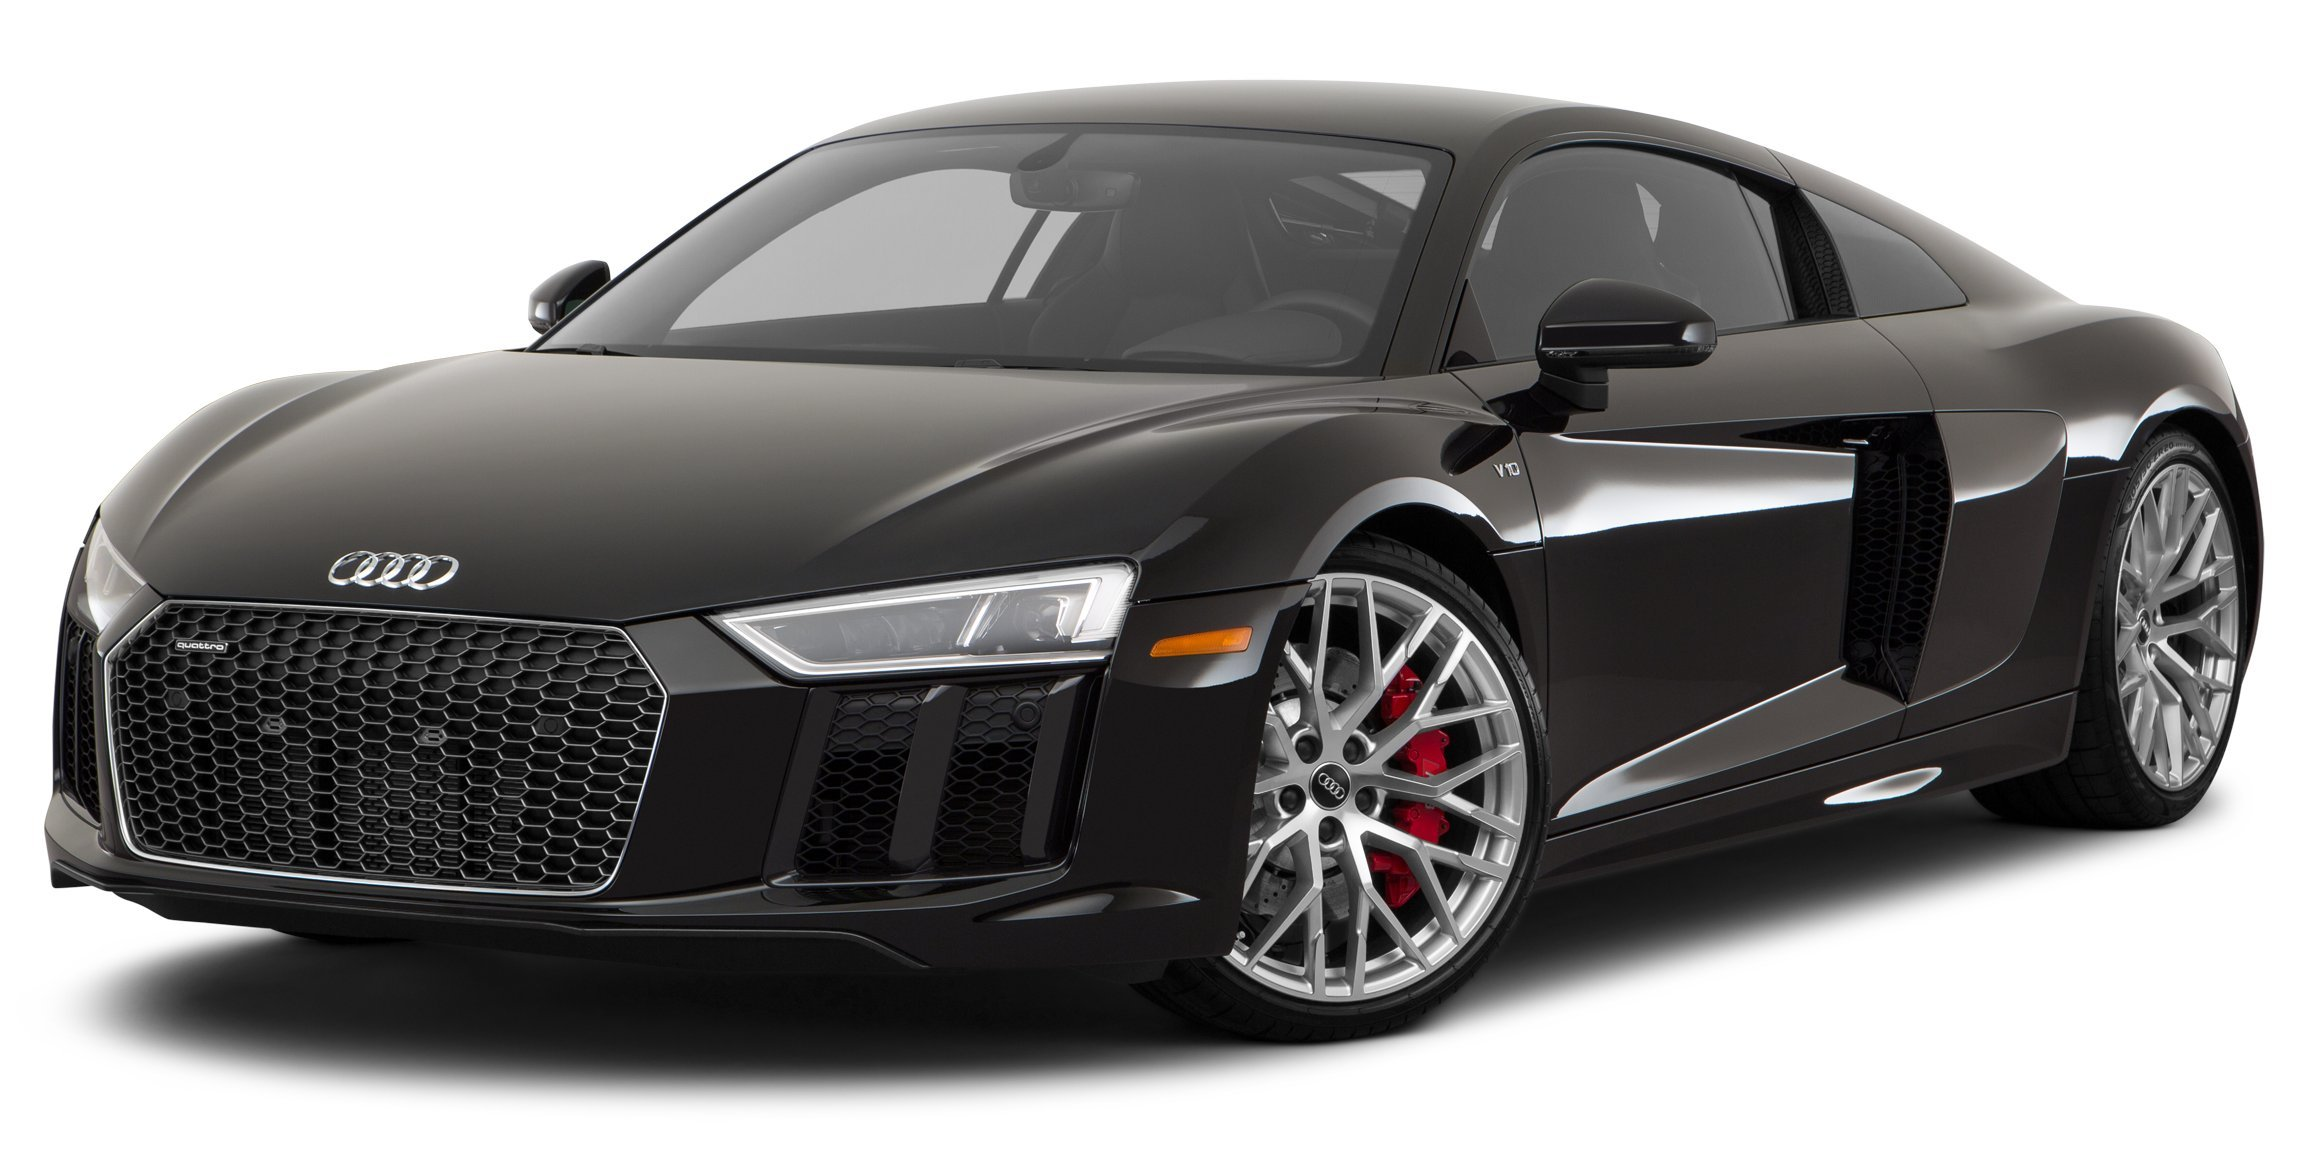 Amazoncom Audi R Reviews Images And Specs Vehicles - Audi r8 black